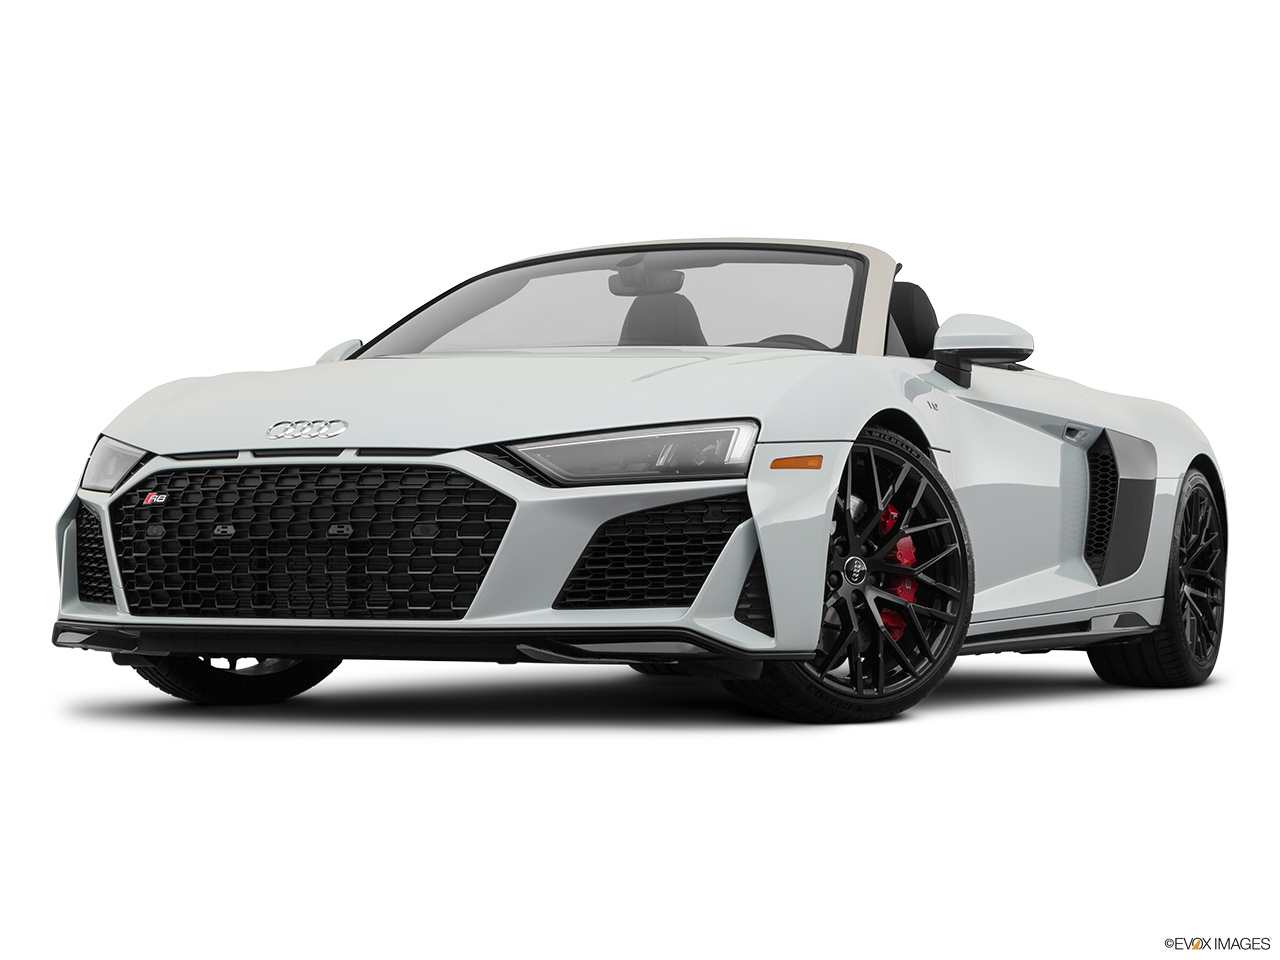 2020 Audi R8 Spyder V10 Front angle view, low wide perspective.